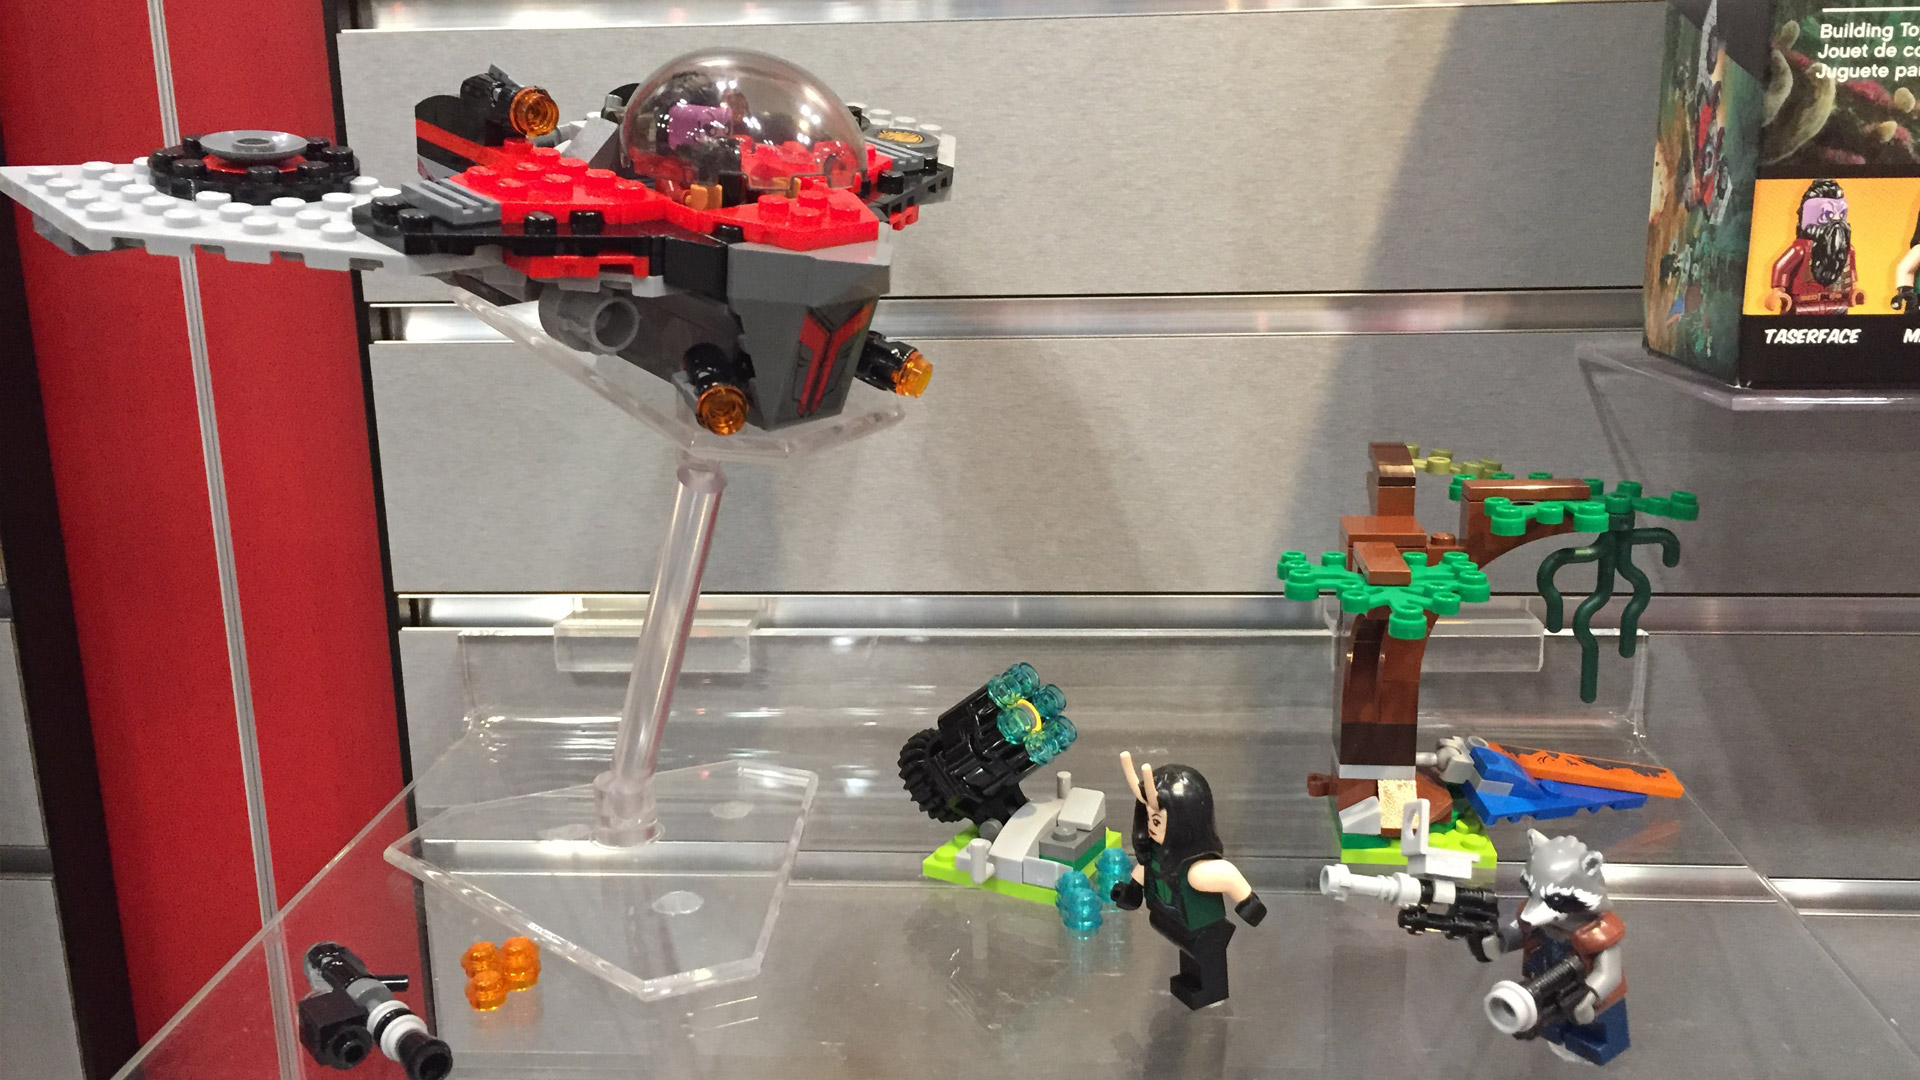 LEGO Marvel Super Heroes Set 76079 Guardians of the Galaxy 2 Villain Veh at Toy Fair 2017